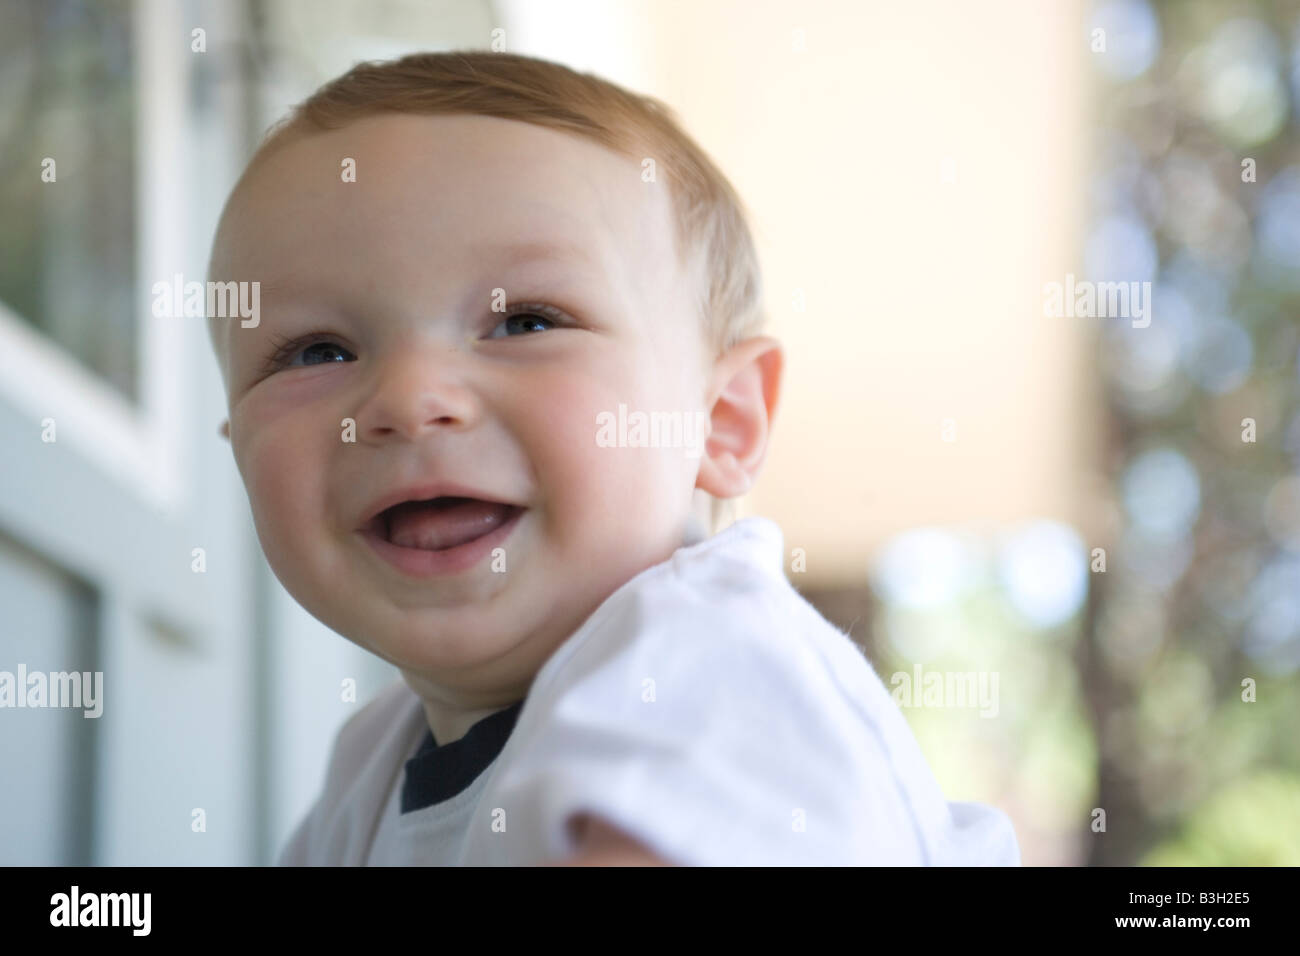 close up of eight month old baby smiling outdoors, confidence, joy, laughter Stock Photo